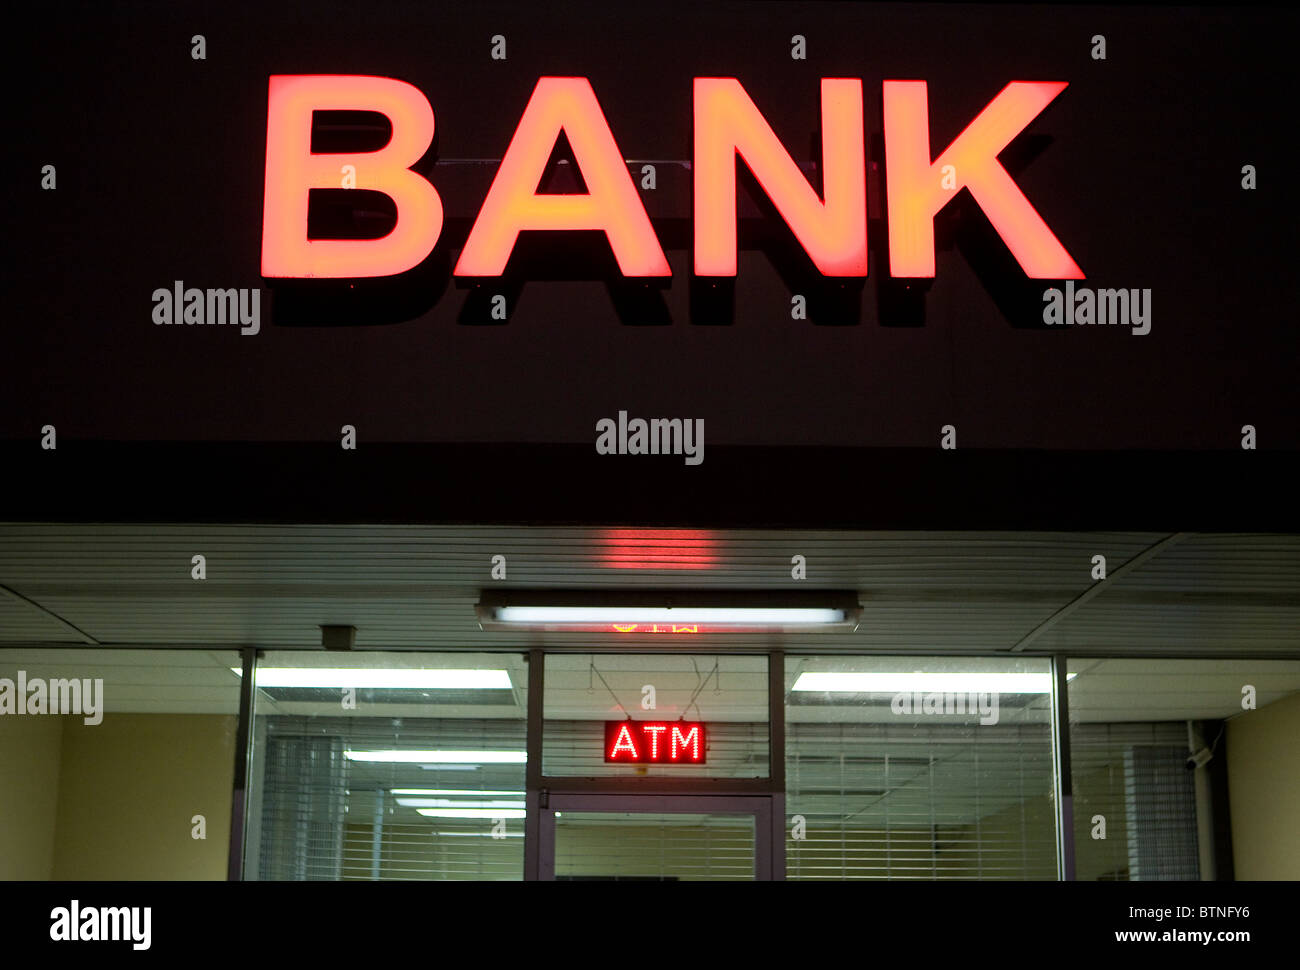 A Bank neon sign.  - Stock Image